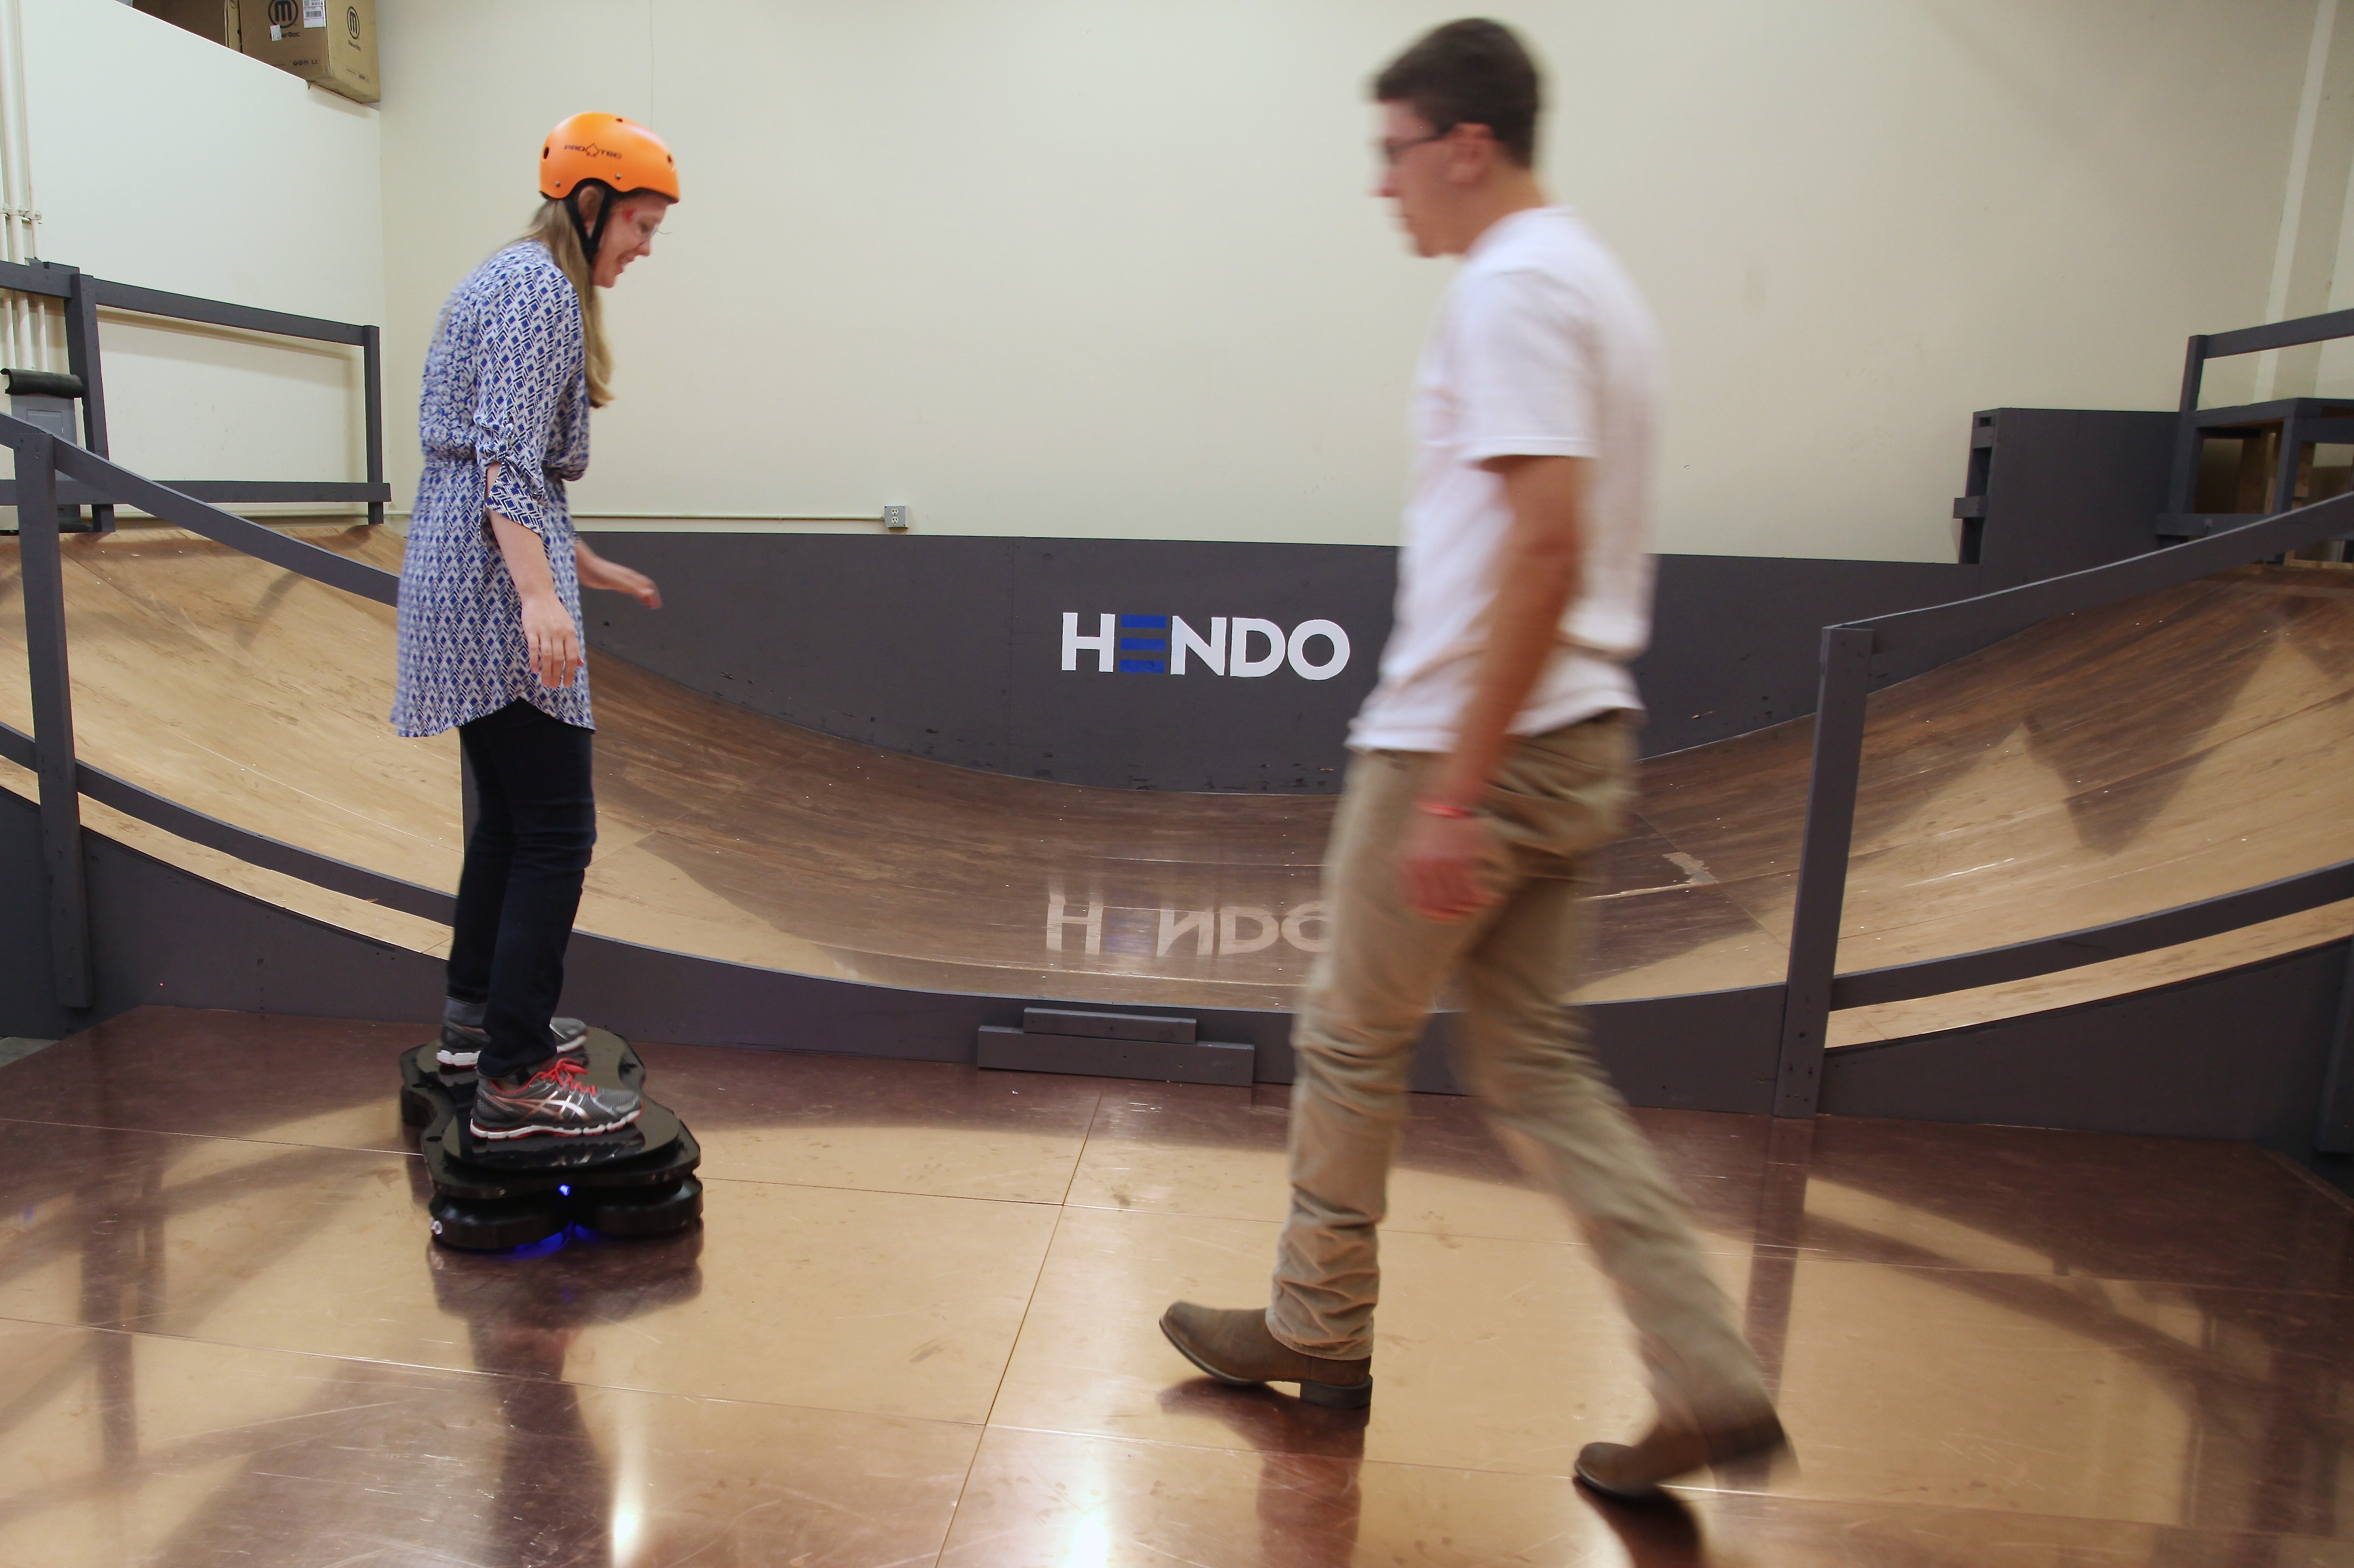 That's me on the Hendo hoverboard. Photo by Arx Pax.